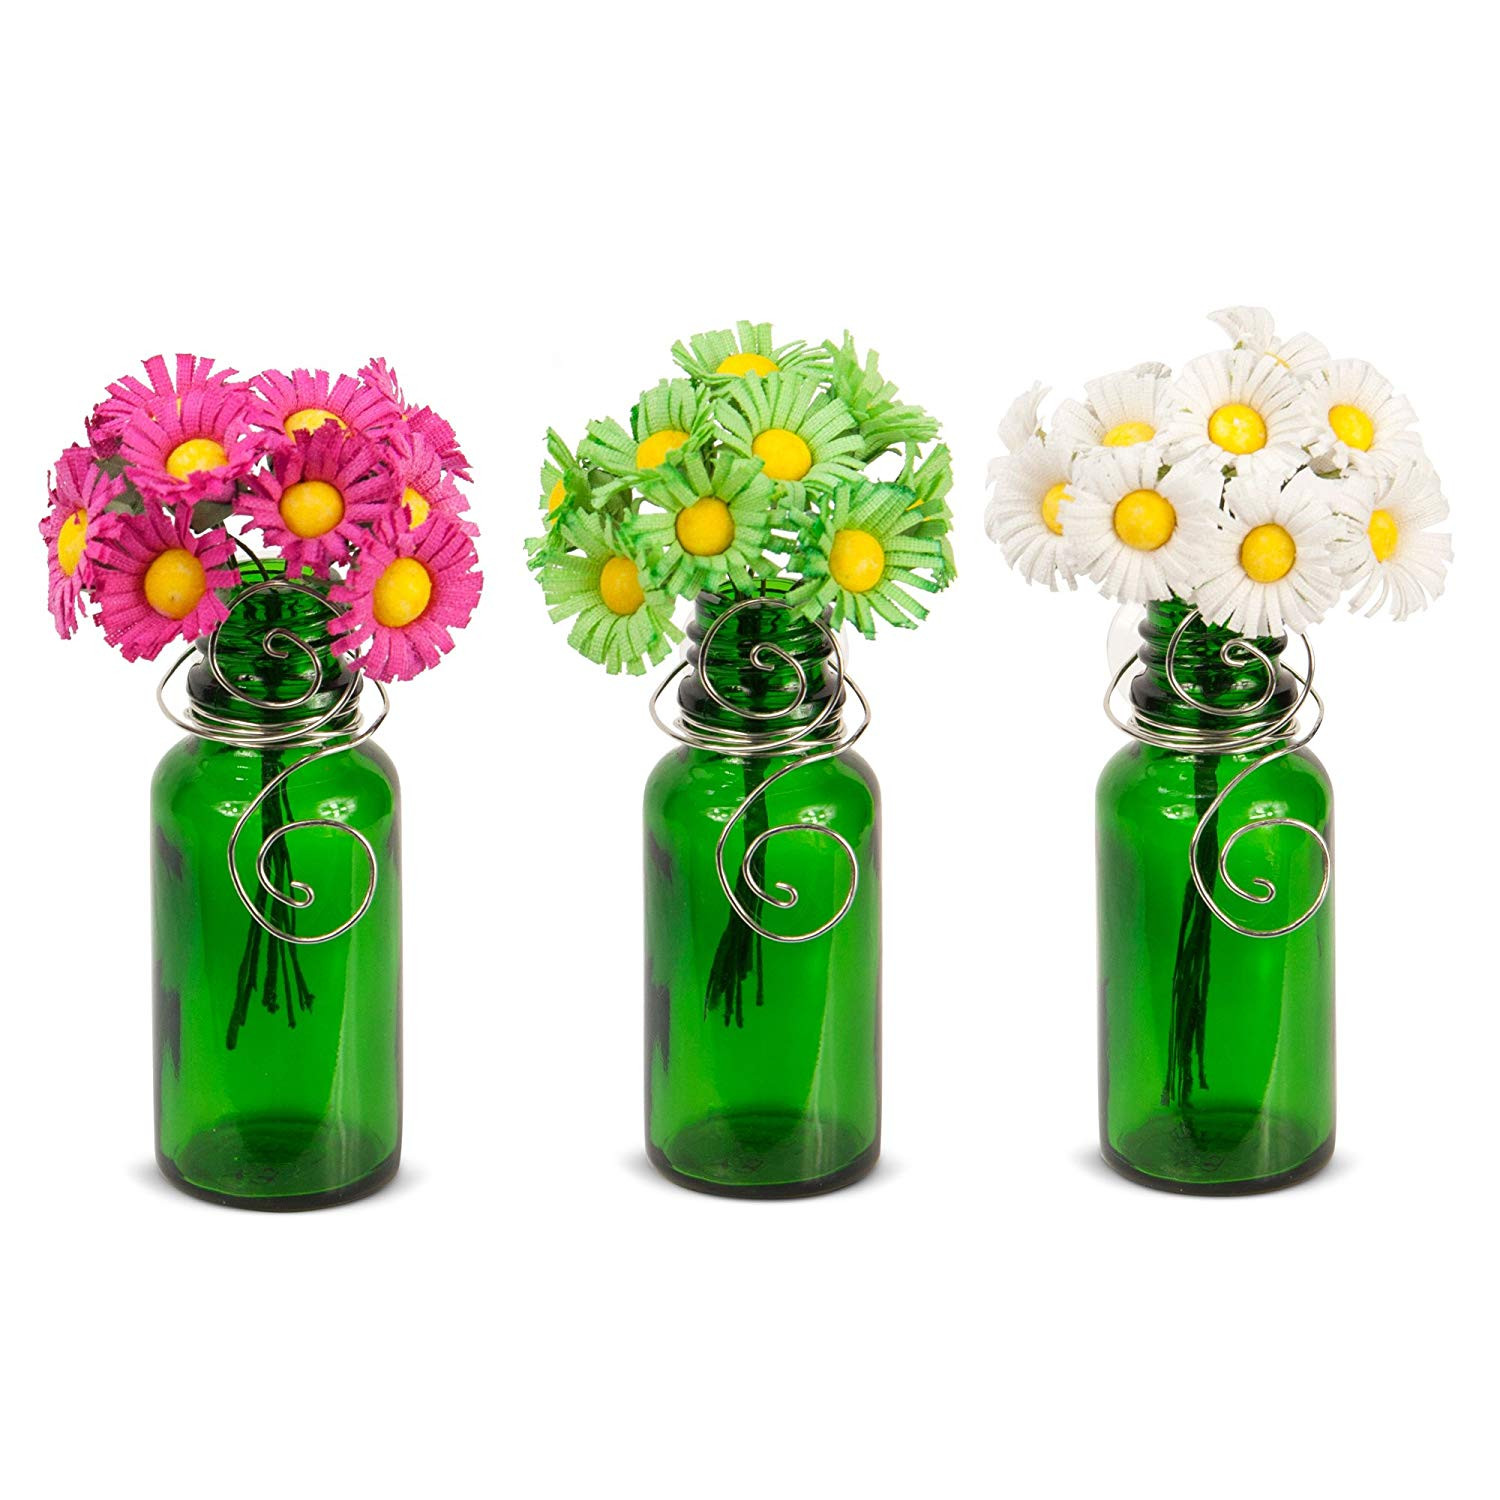 Crystal Single Flower Vase Of Amazon Com Vazzini Mini Vase Bouquet Suction Cup Bud Bottle Inside Amazon Com Vazzini Mini Vase Bouquet Suction Cup Bud Bottle Holder with Flowers Decorative for Window Mirrors Tile Wedding Party Favor Get Well